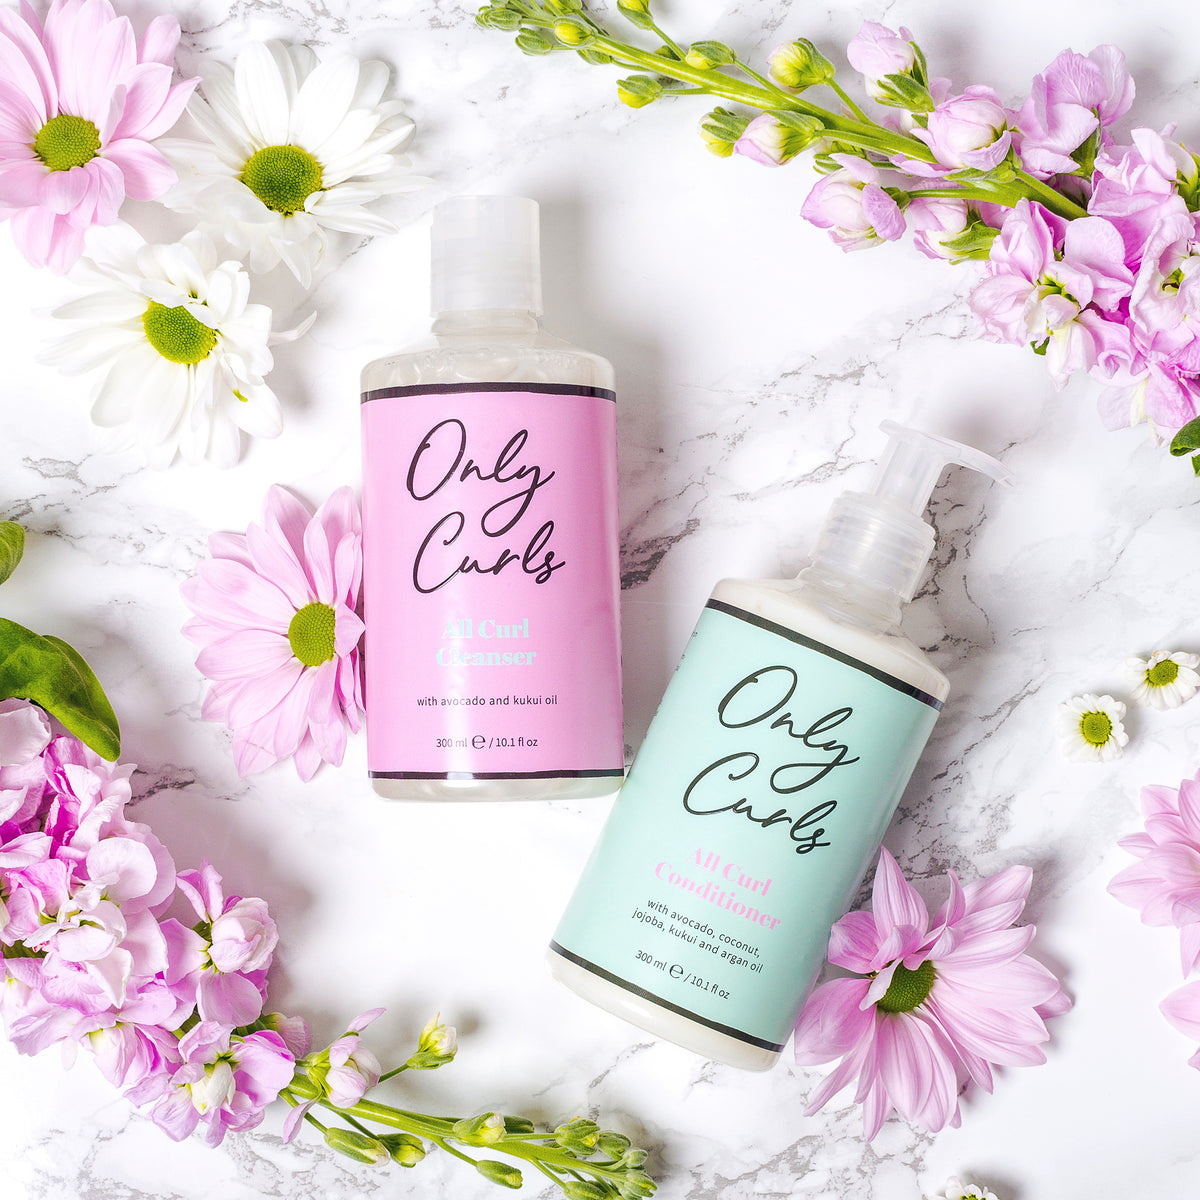 Only Curls Cleansing Bundle - Only Curls